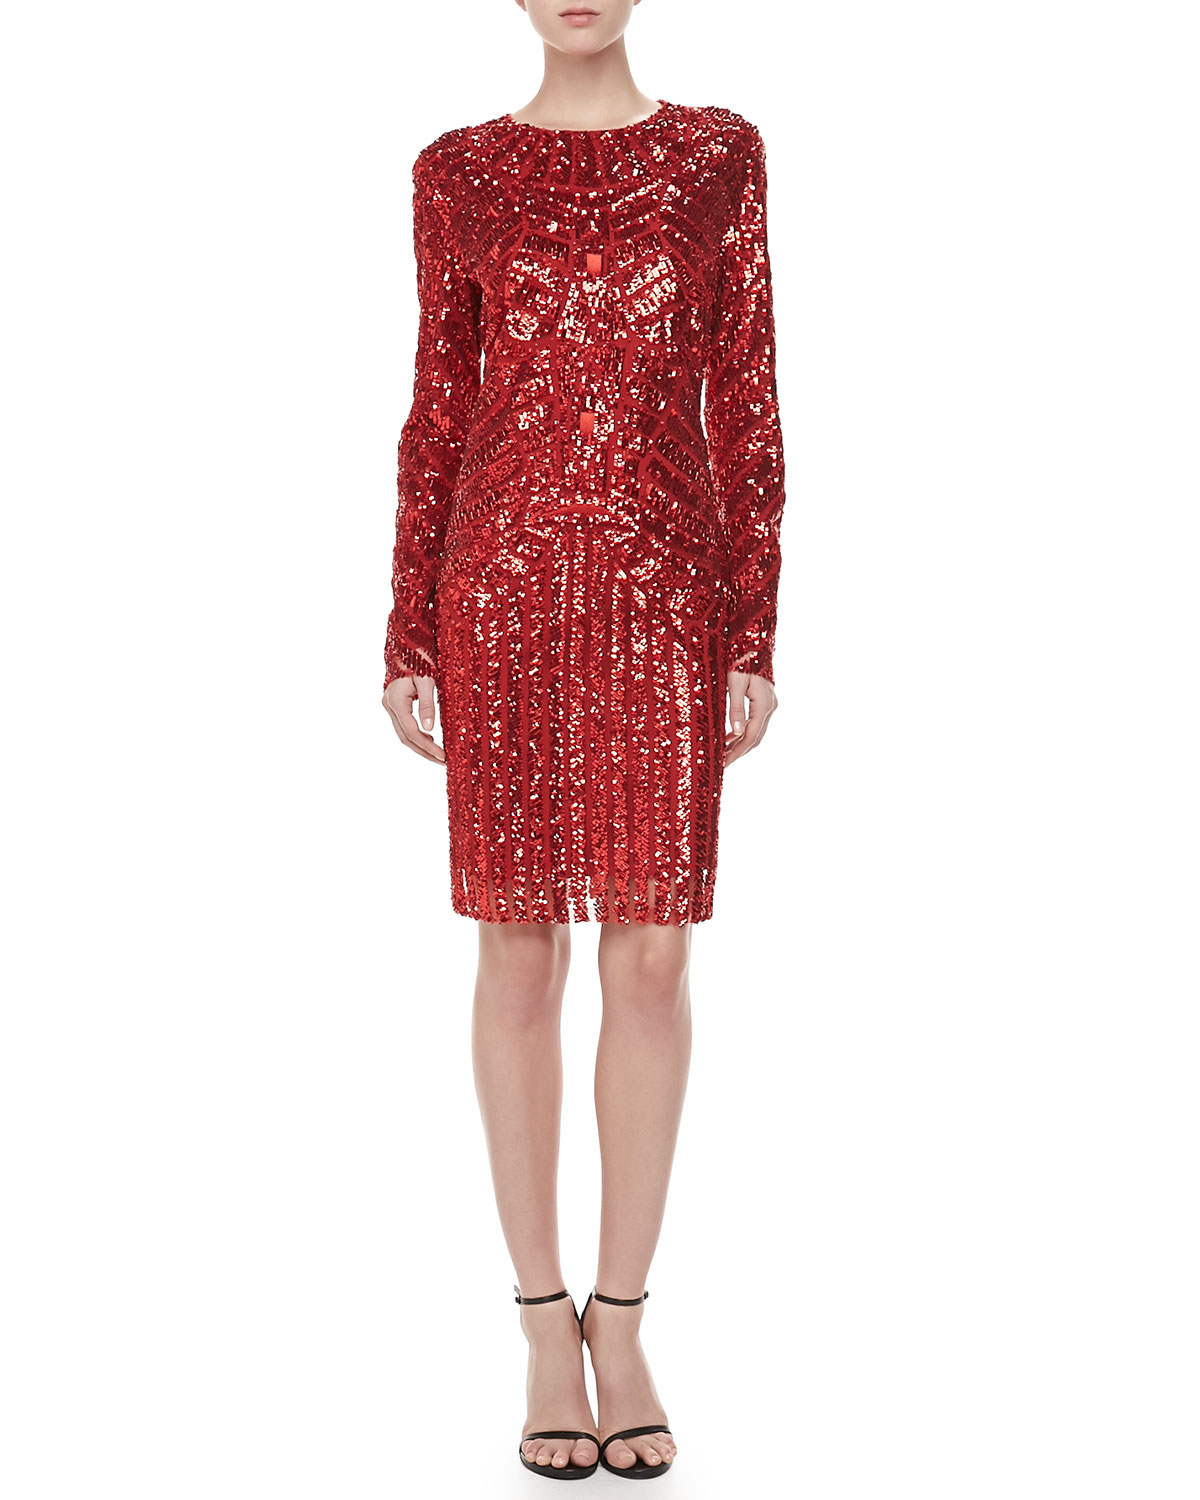 Womens Sequined Long Sleeve Dress, Red   Monique Lhuillier   Red (10)